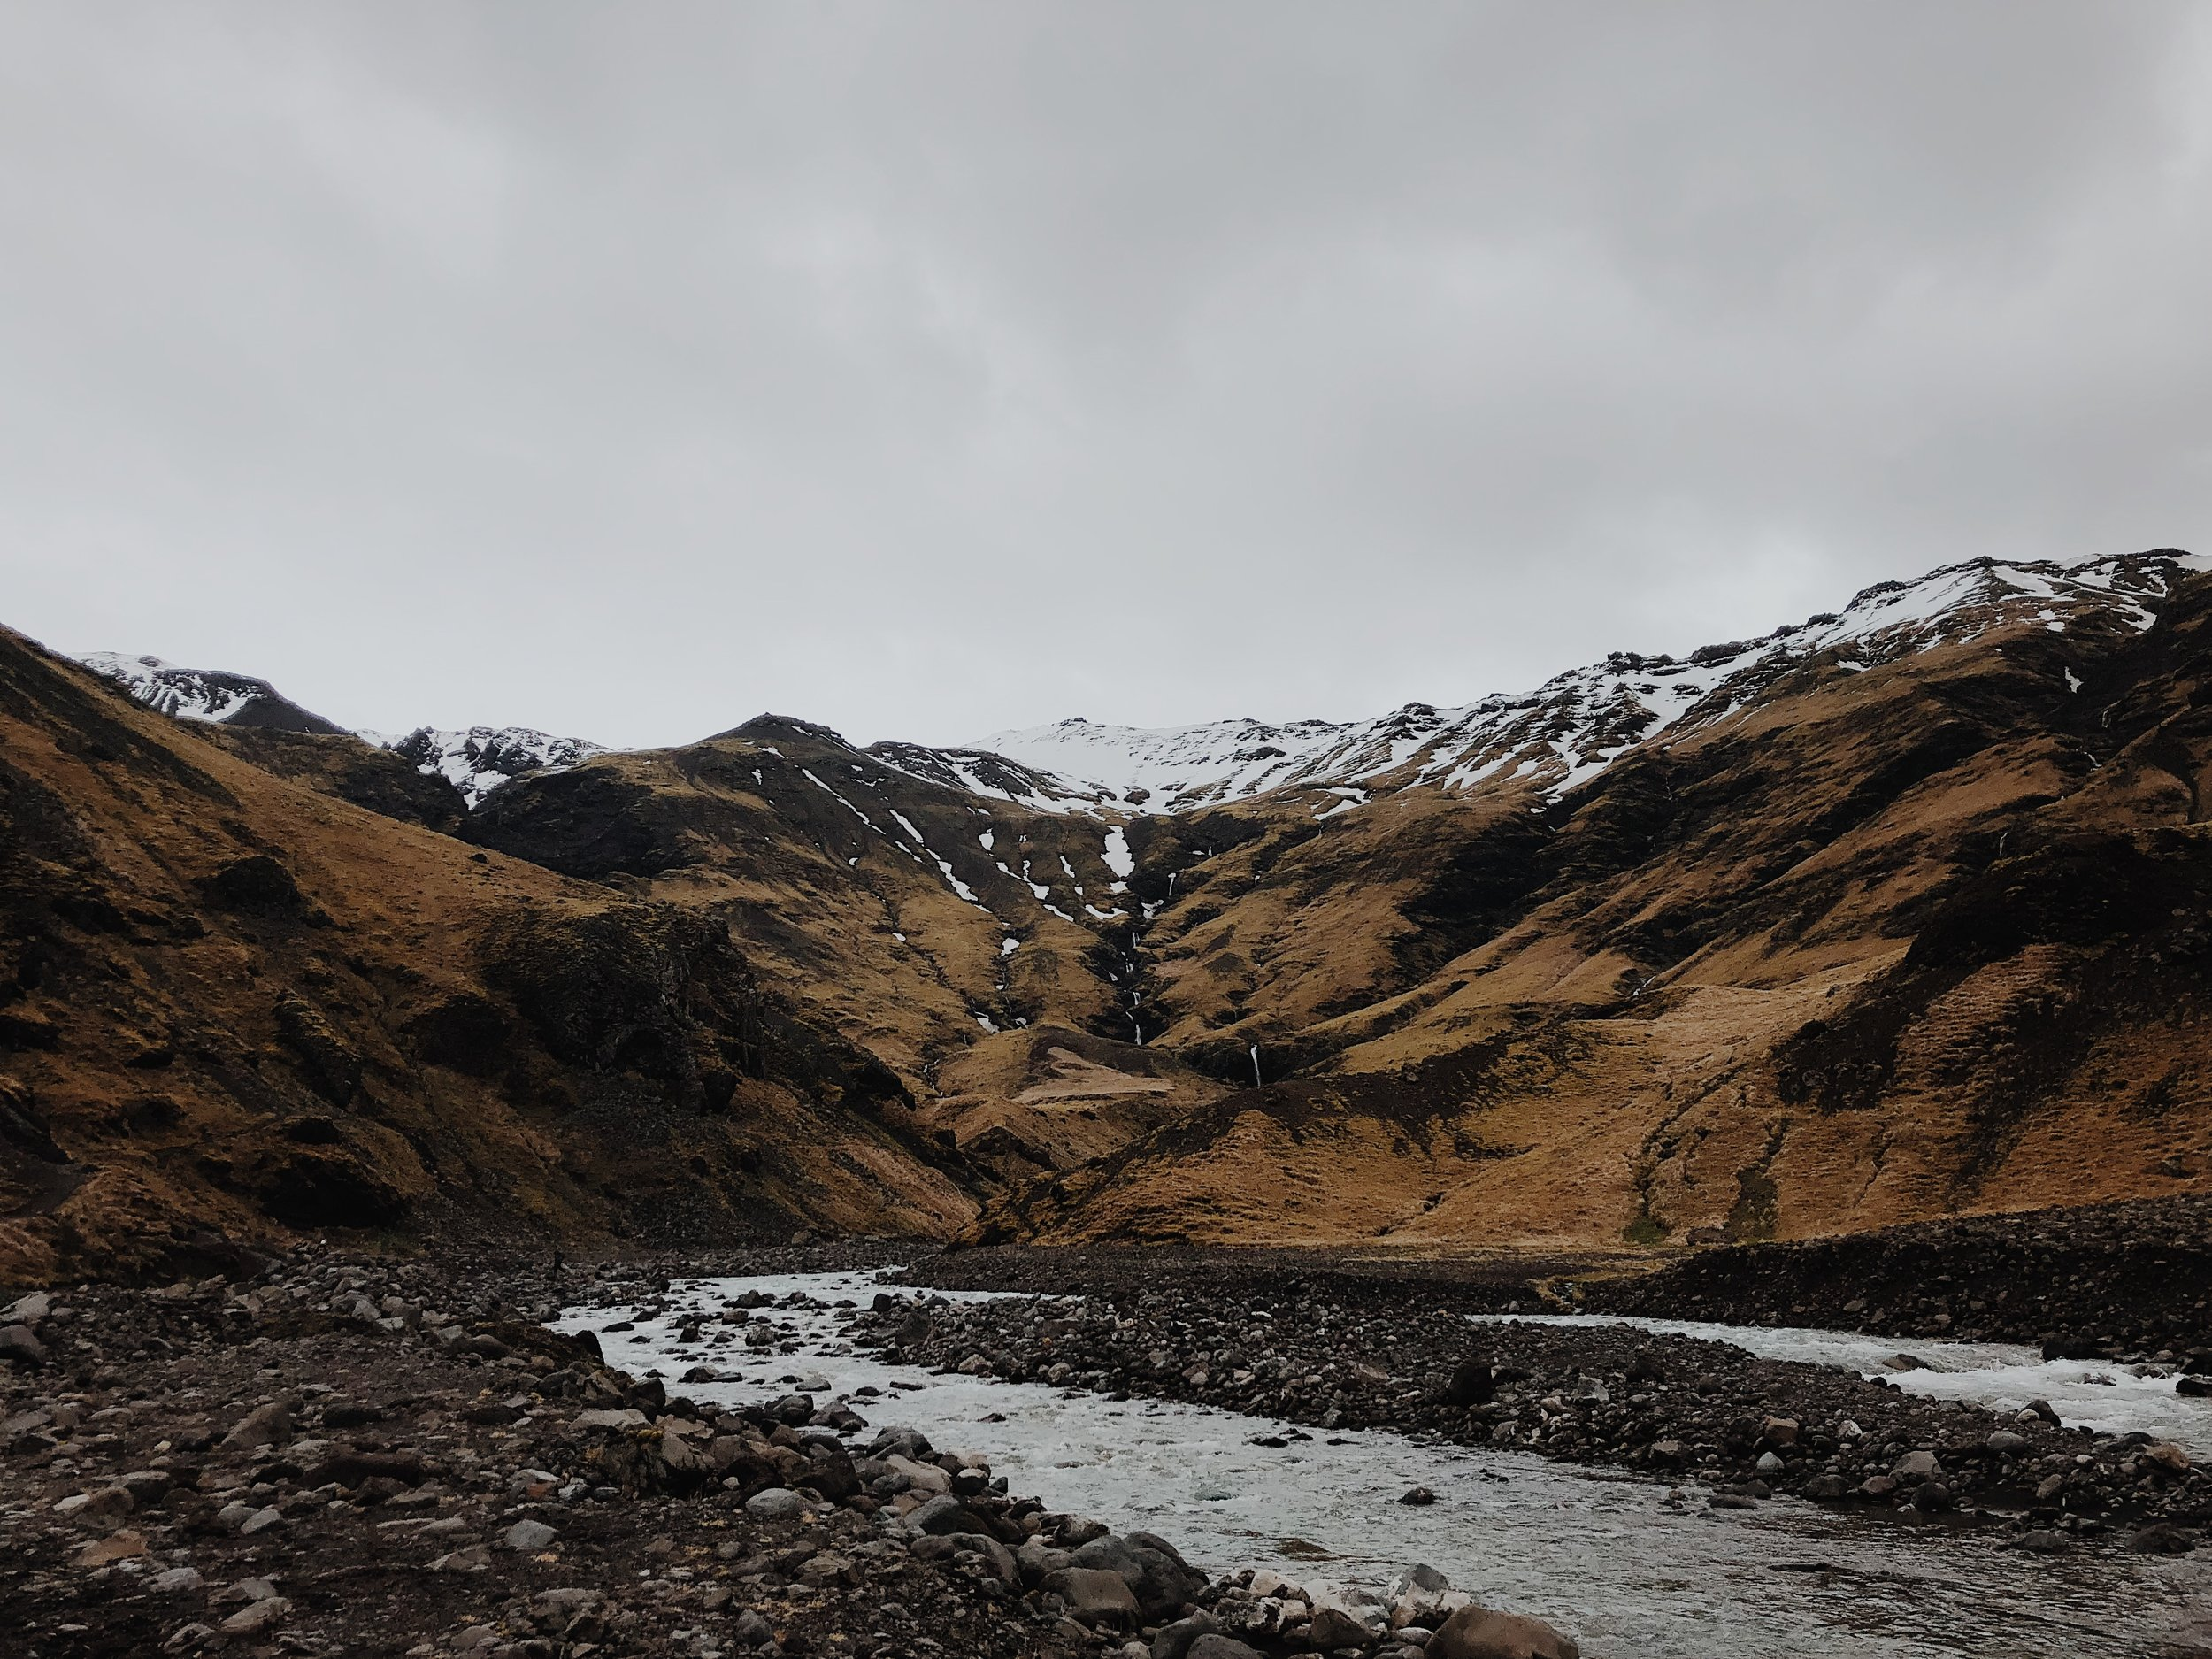 ICELAND WEDDING AND ELOPEMENT PHOTOGRAPHER - here to document your adventurous moments